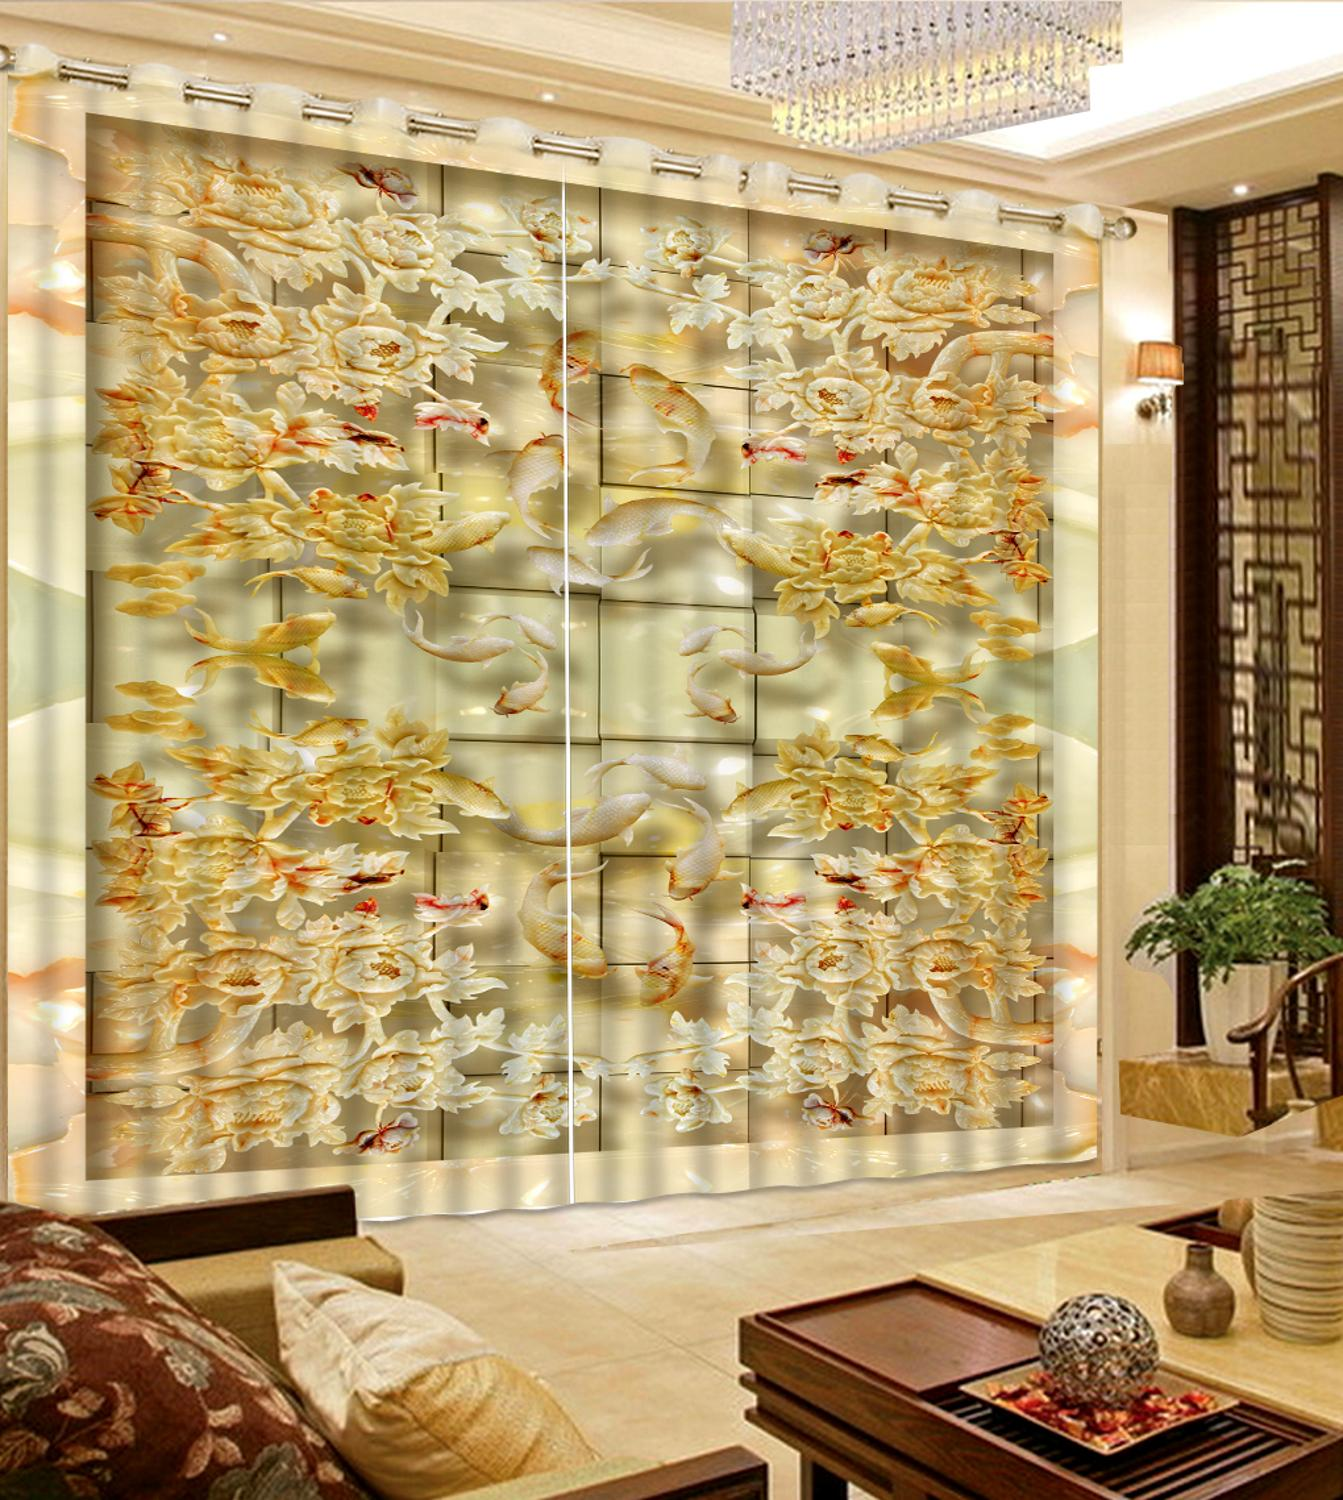 customize 3D curtain blackout for bedroom living room Jade tile mosaic window curtain Home Decorationcustomize 3D curtain blackout for bedroom living room Jade tile mosaic window curtain Home Decoration